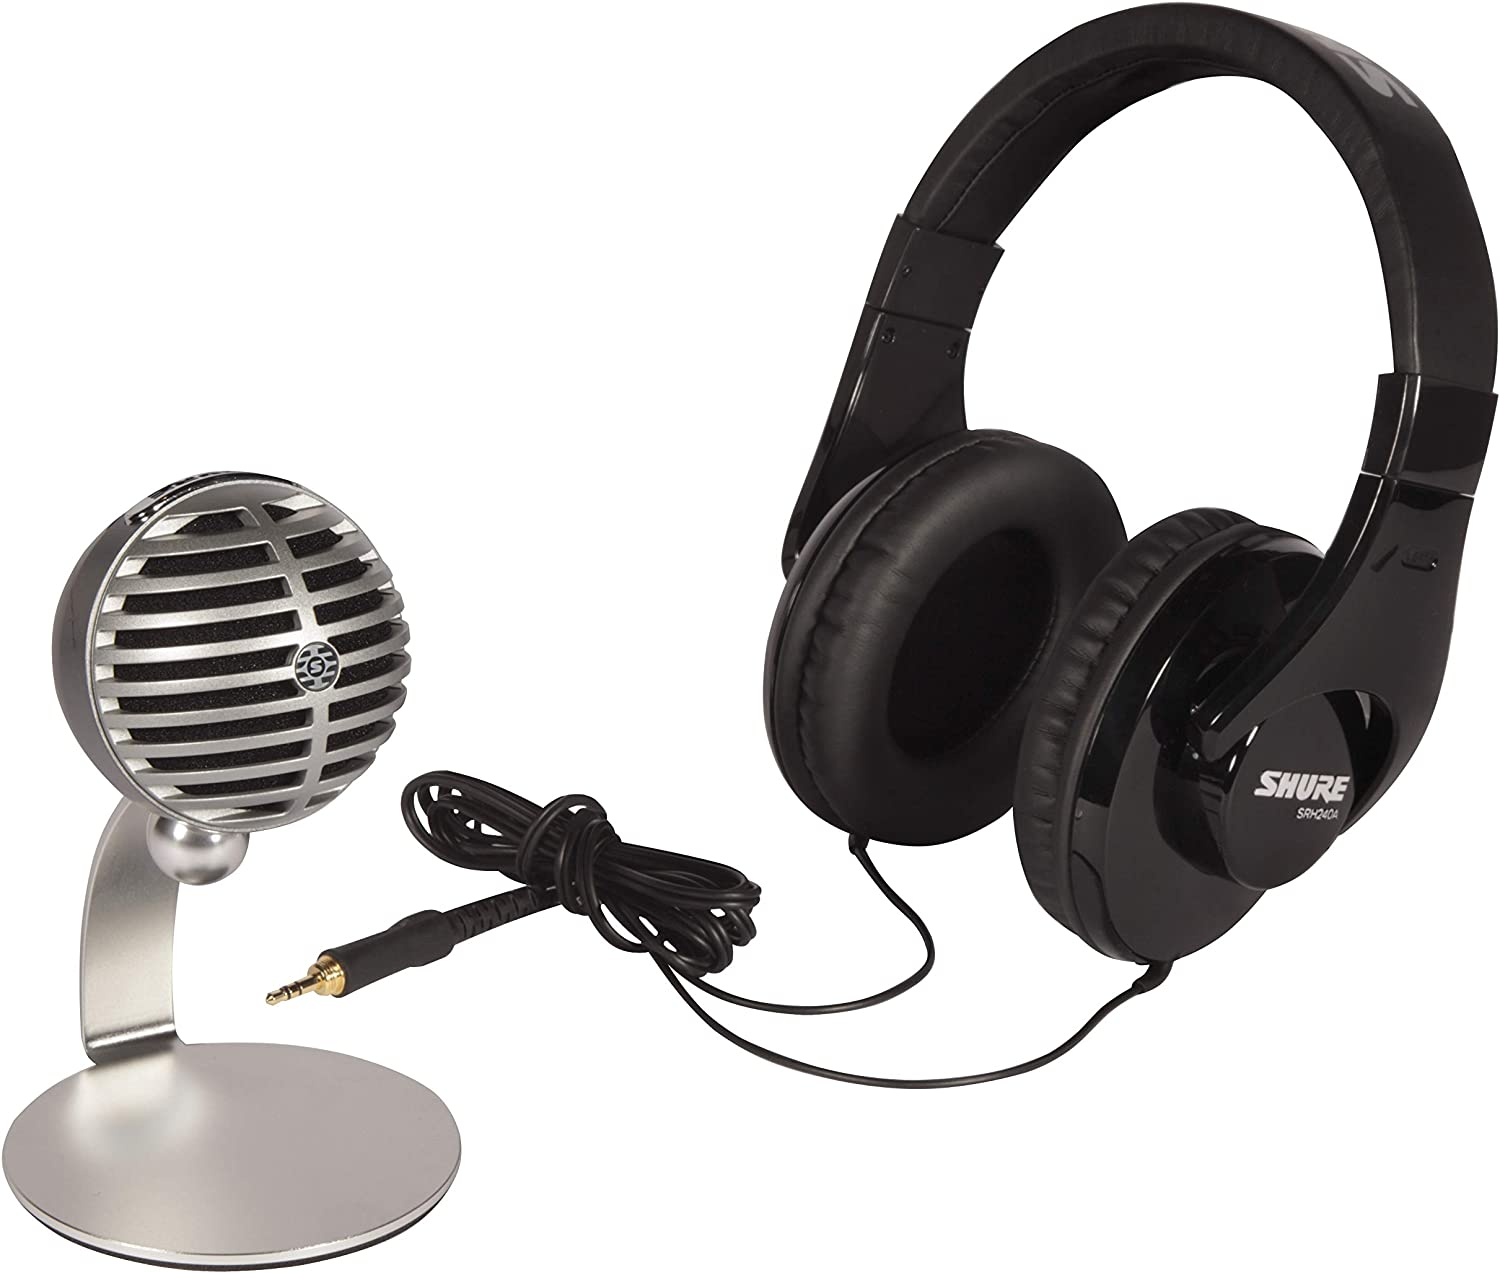 Shure Mobile Recording Kit with SRH240A Headphones and MV5 Microphone including Lightning and USB Cables